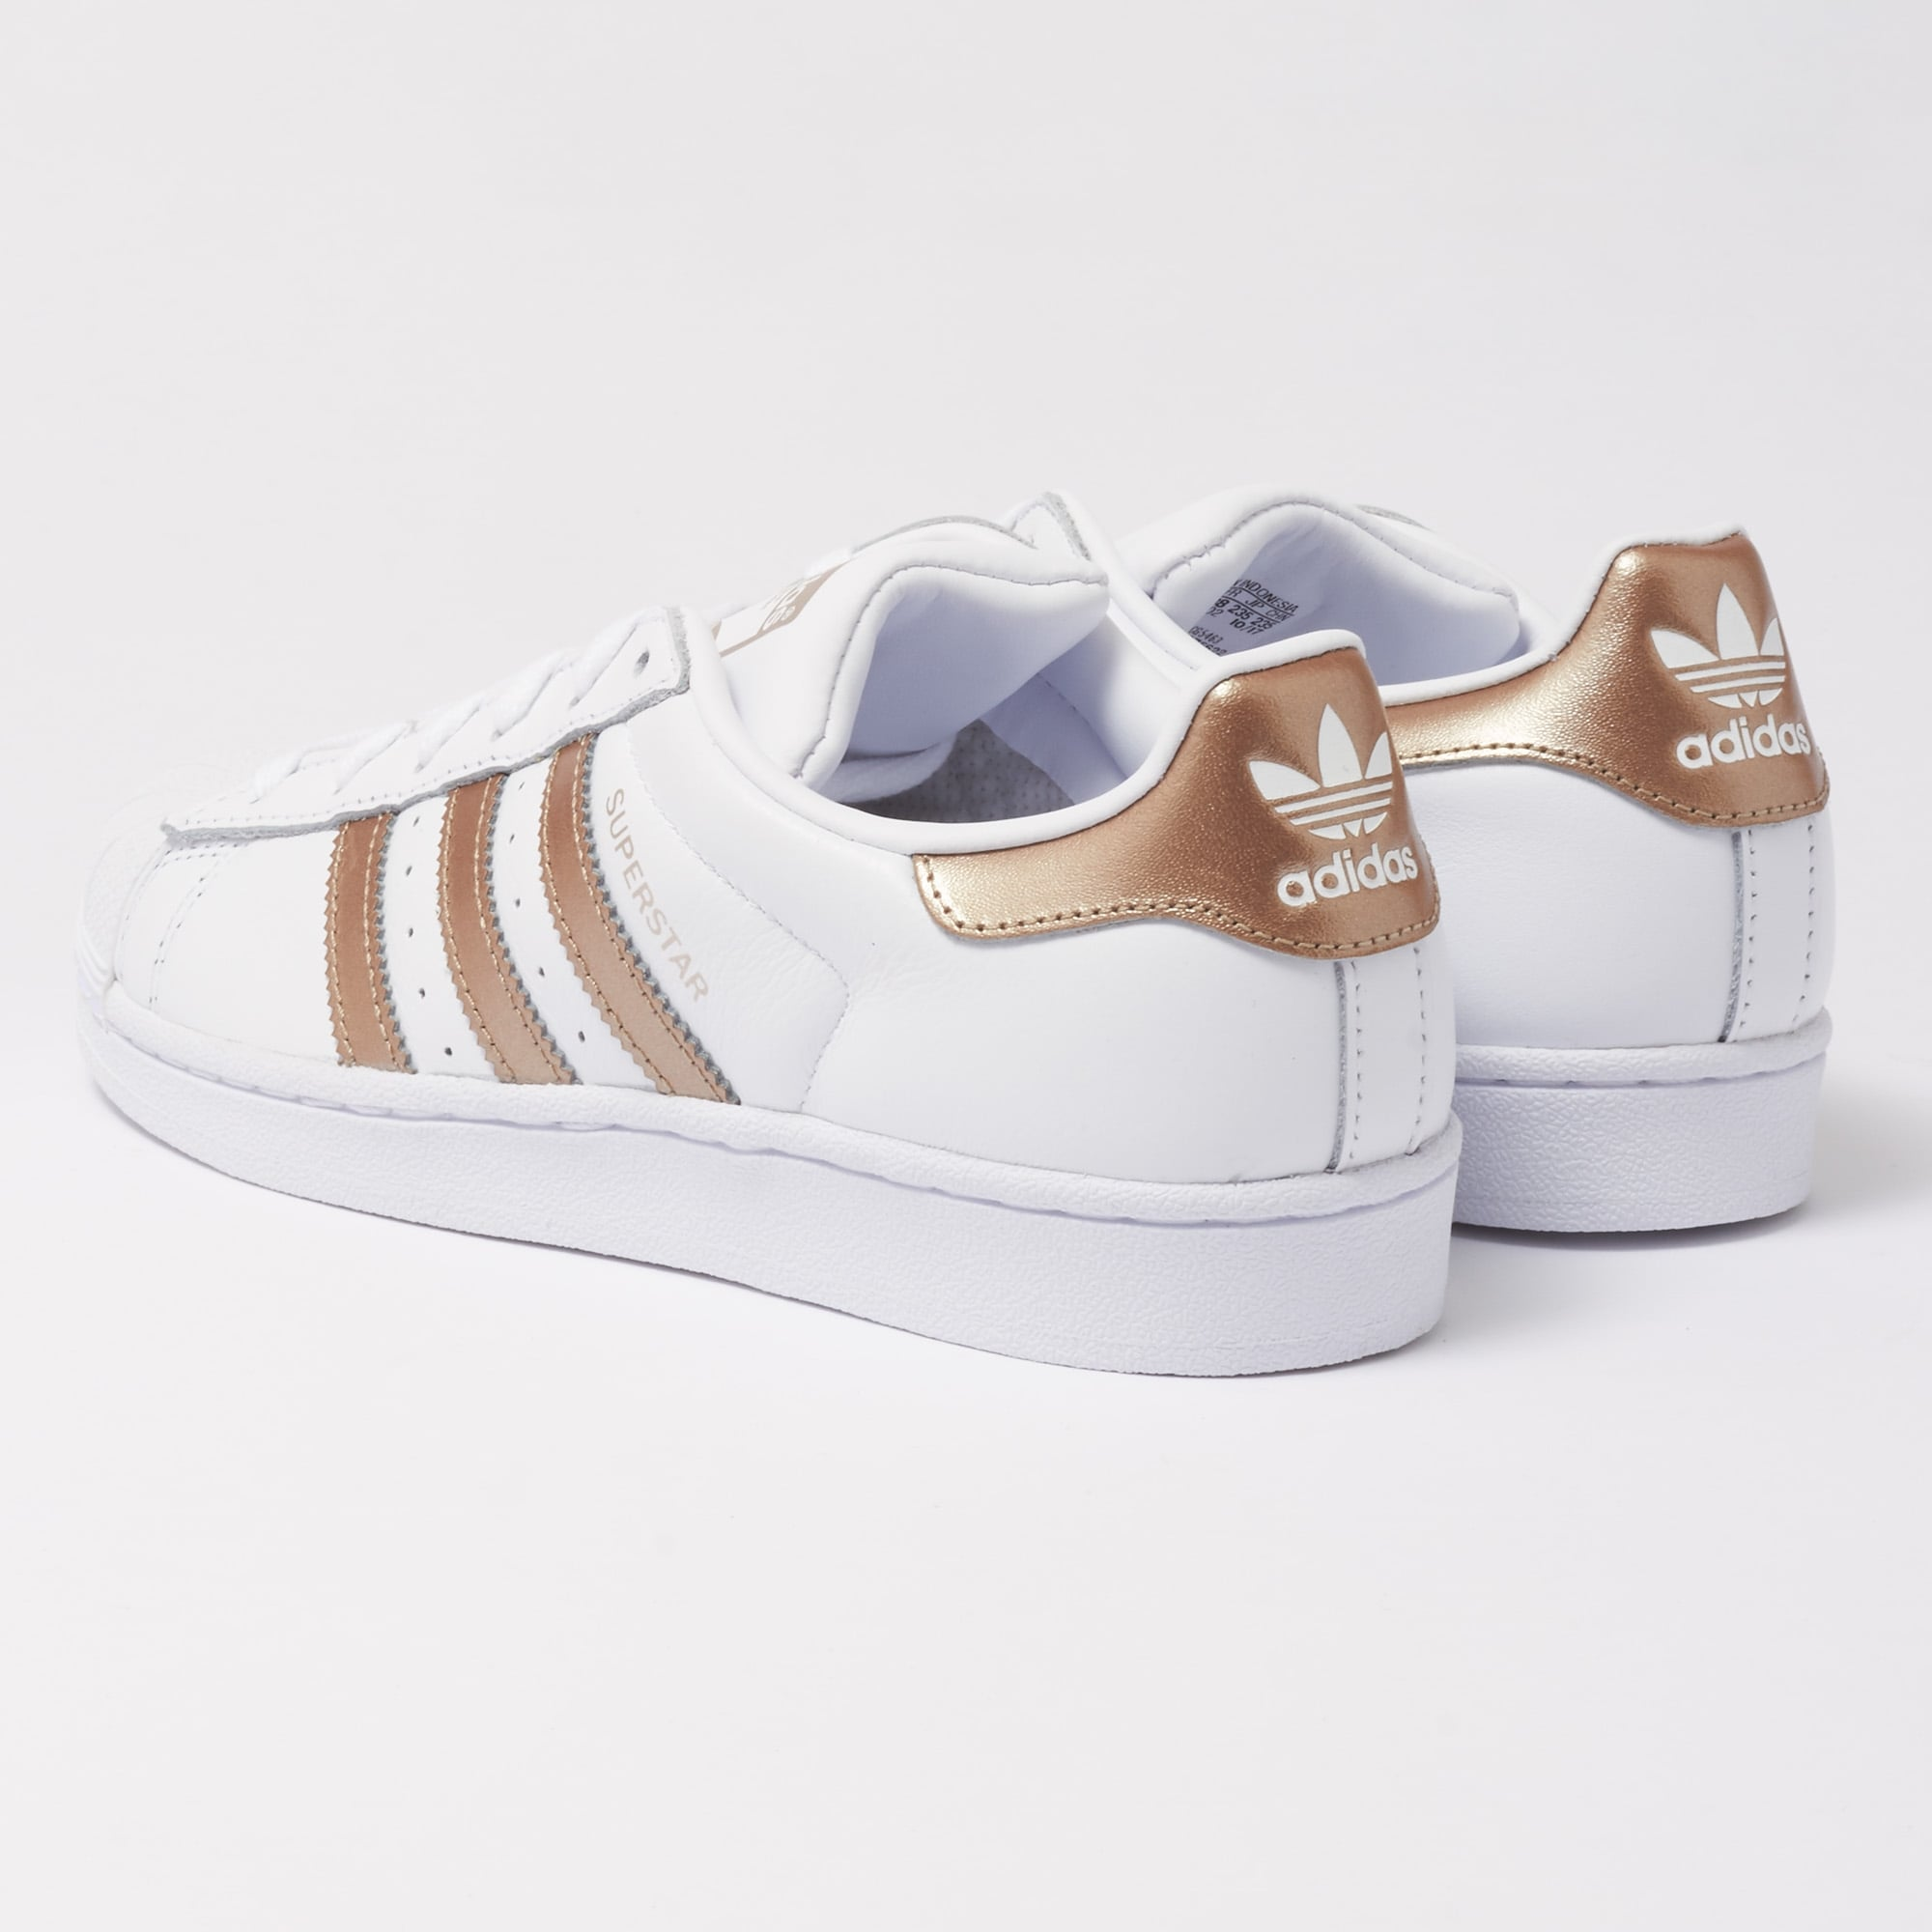 Adidas Superstar W ftwr whitecyber metallicftwr white ab